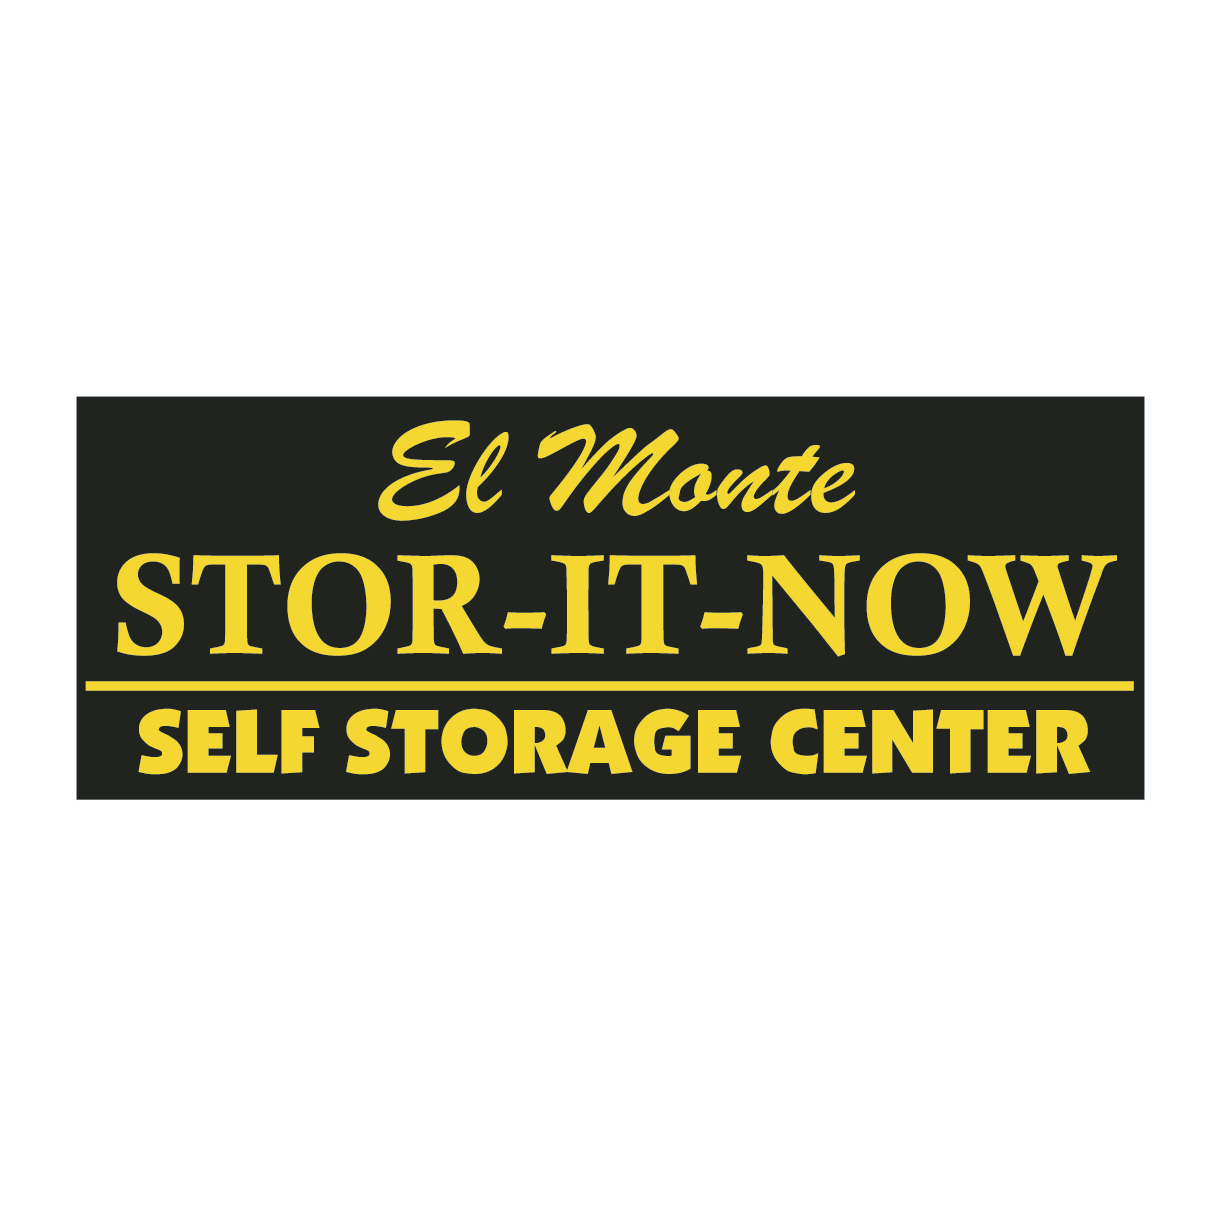 El Monte Stor-It-Now Self Storage Center